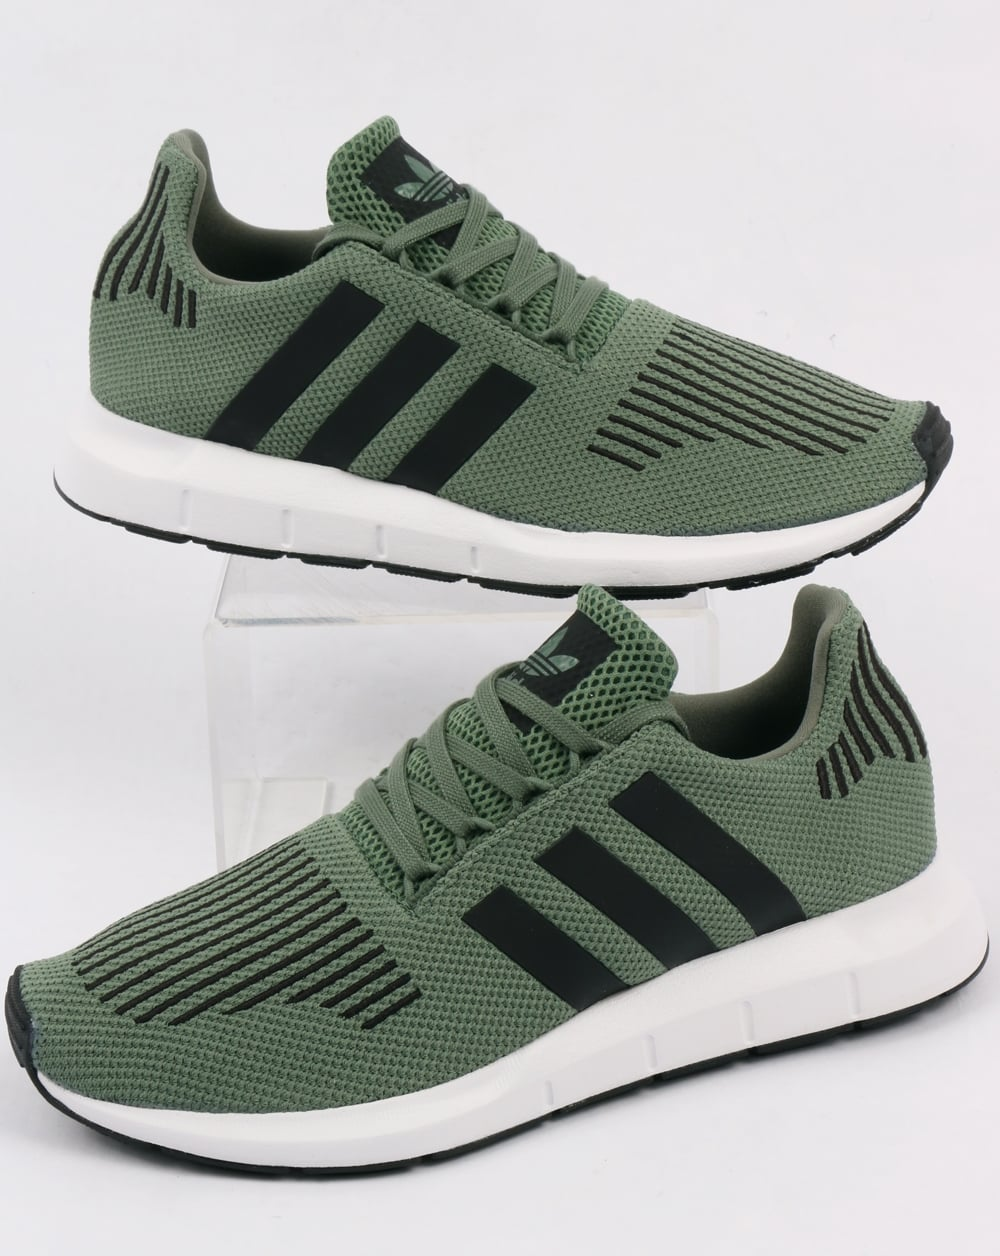 8f262ab53 adidas Trainers Adidas Swift Run Trainers Trace Green Black